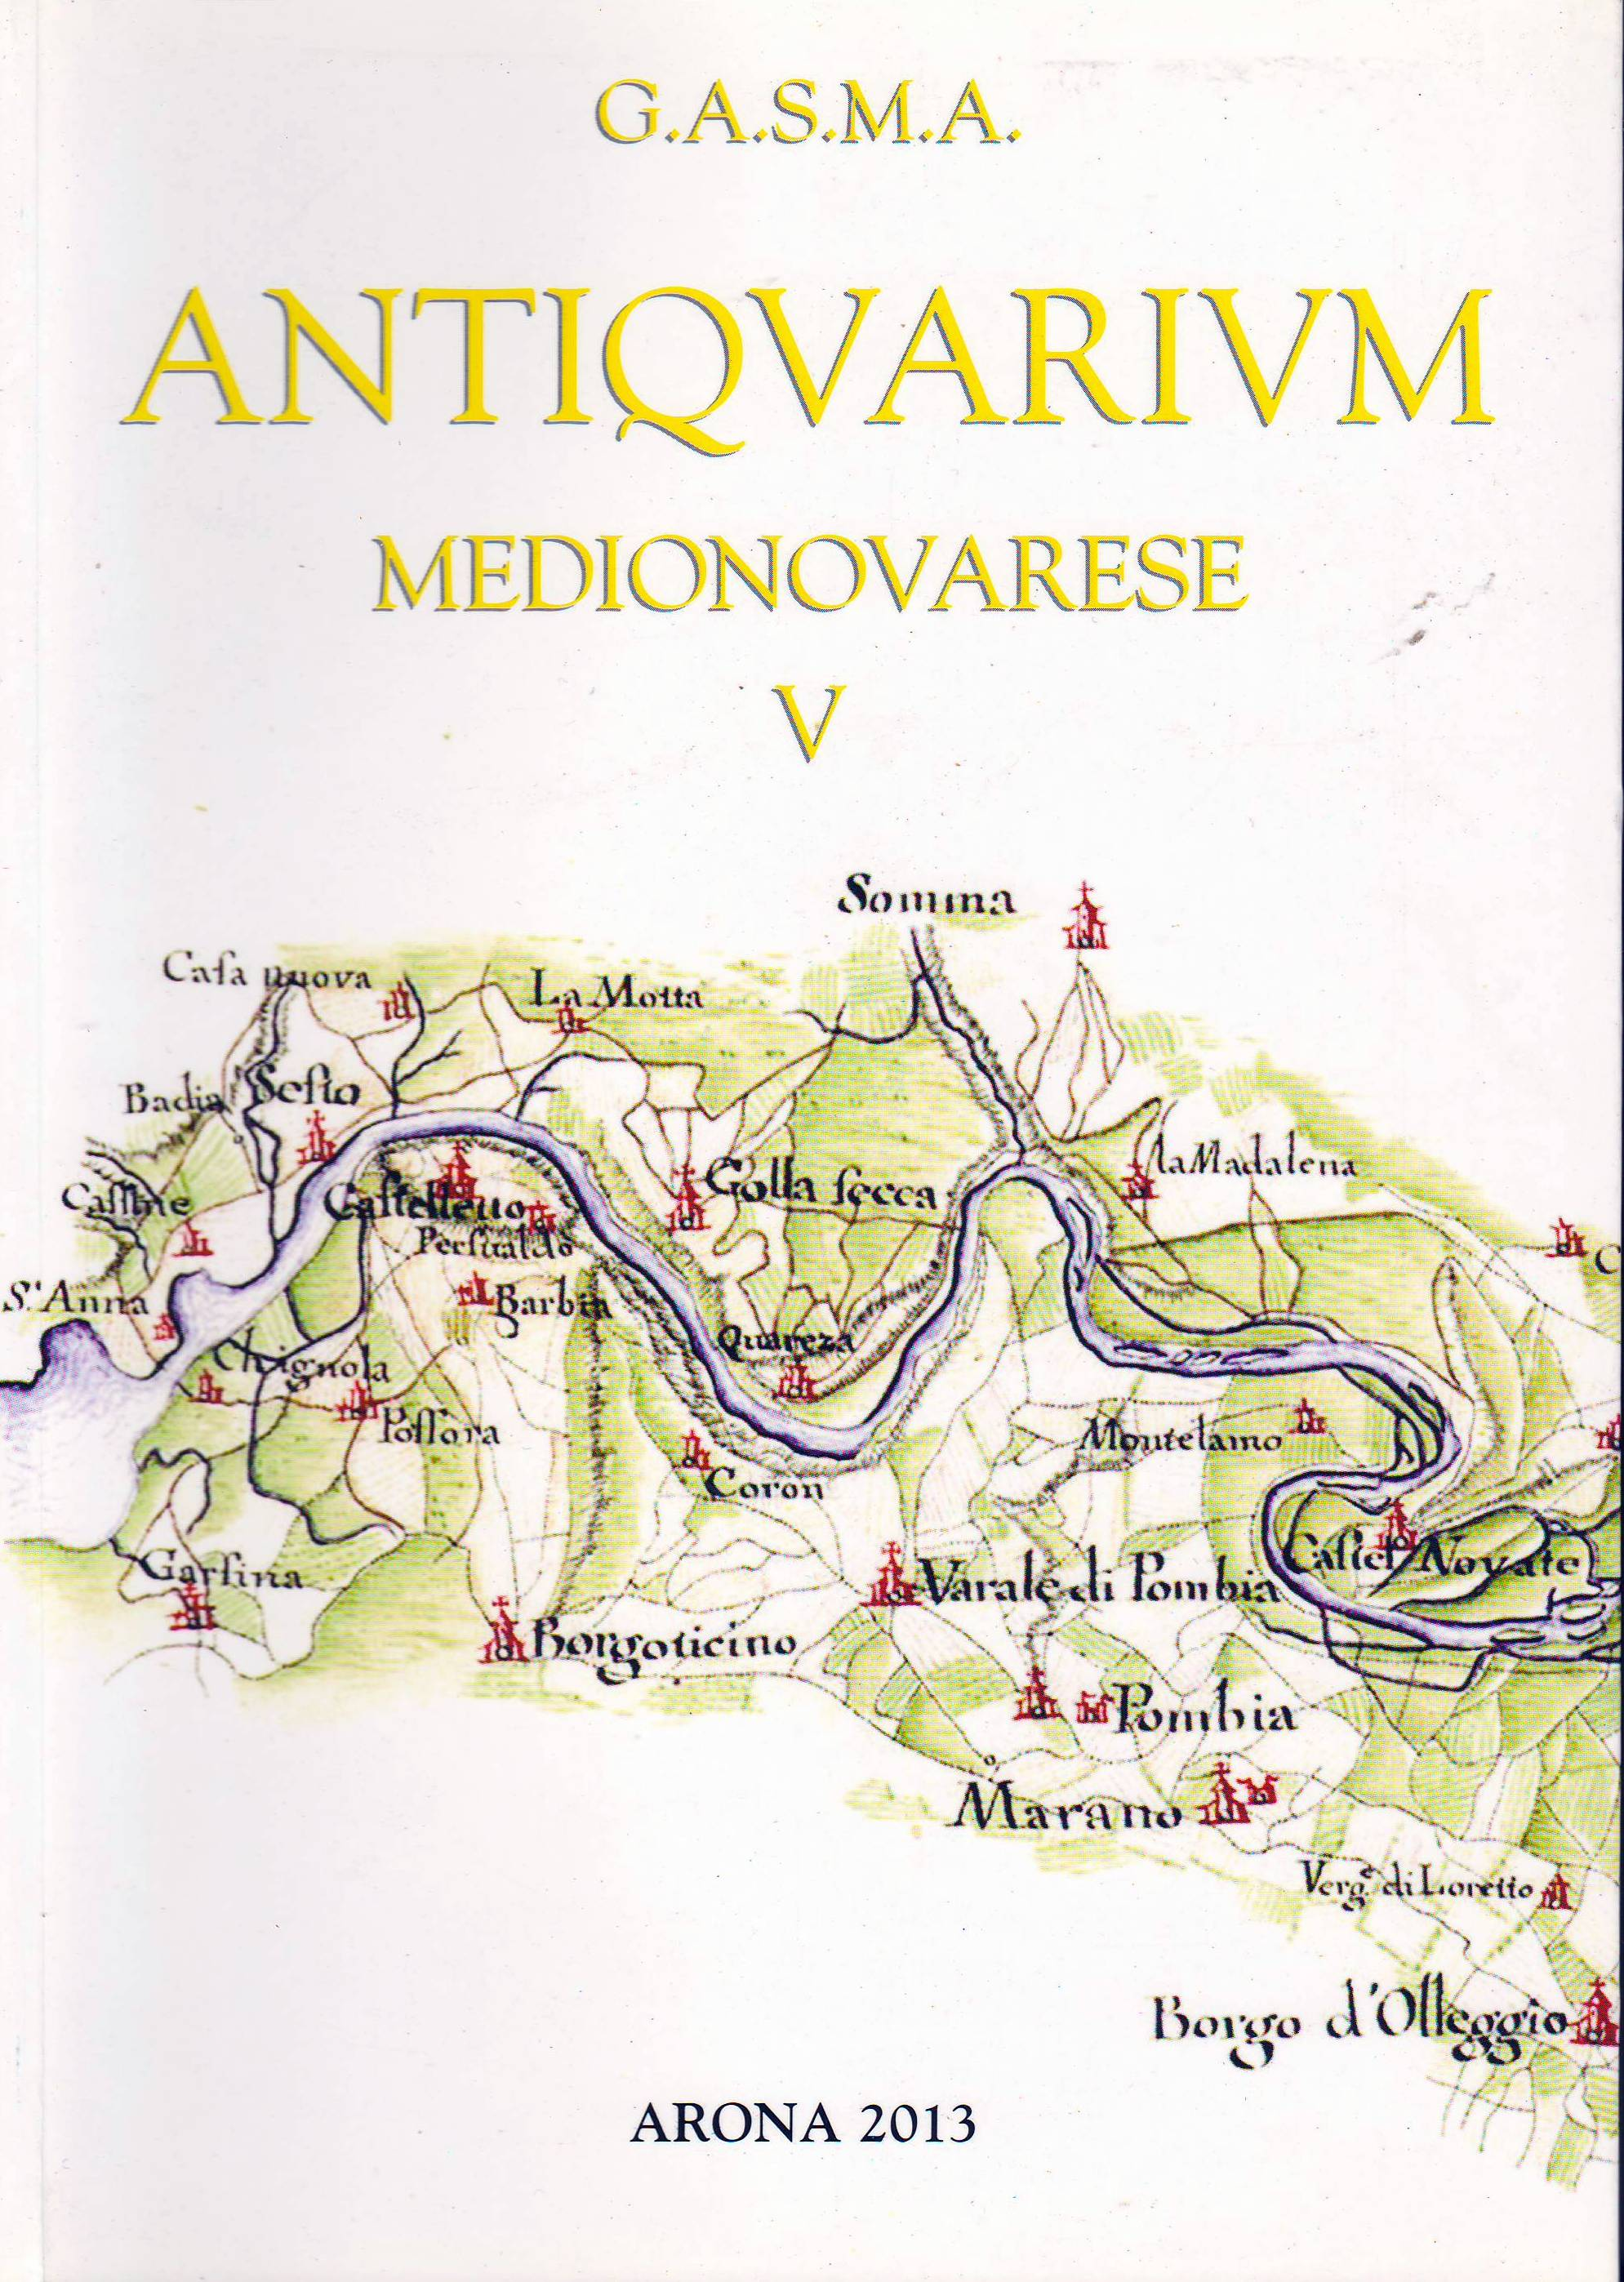 Antiquarium medionovarese vol. 5